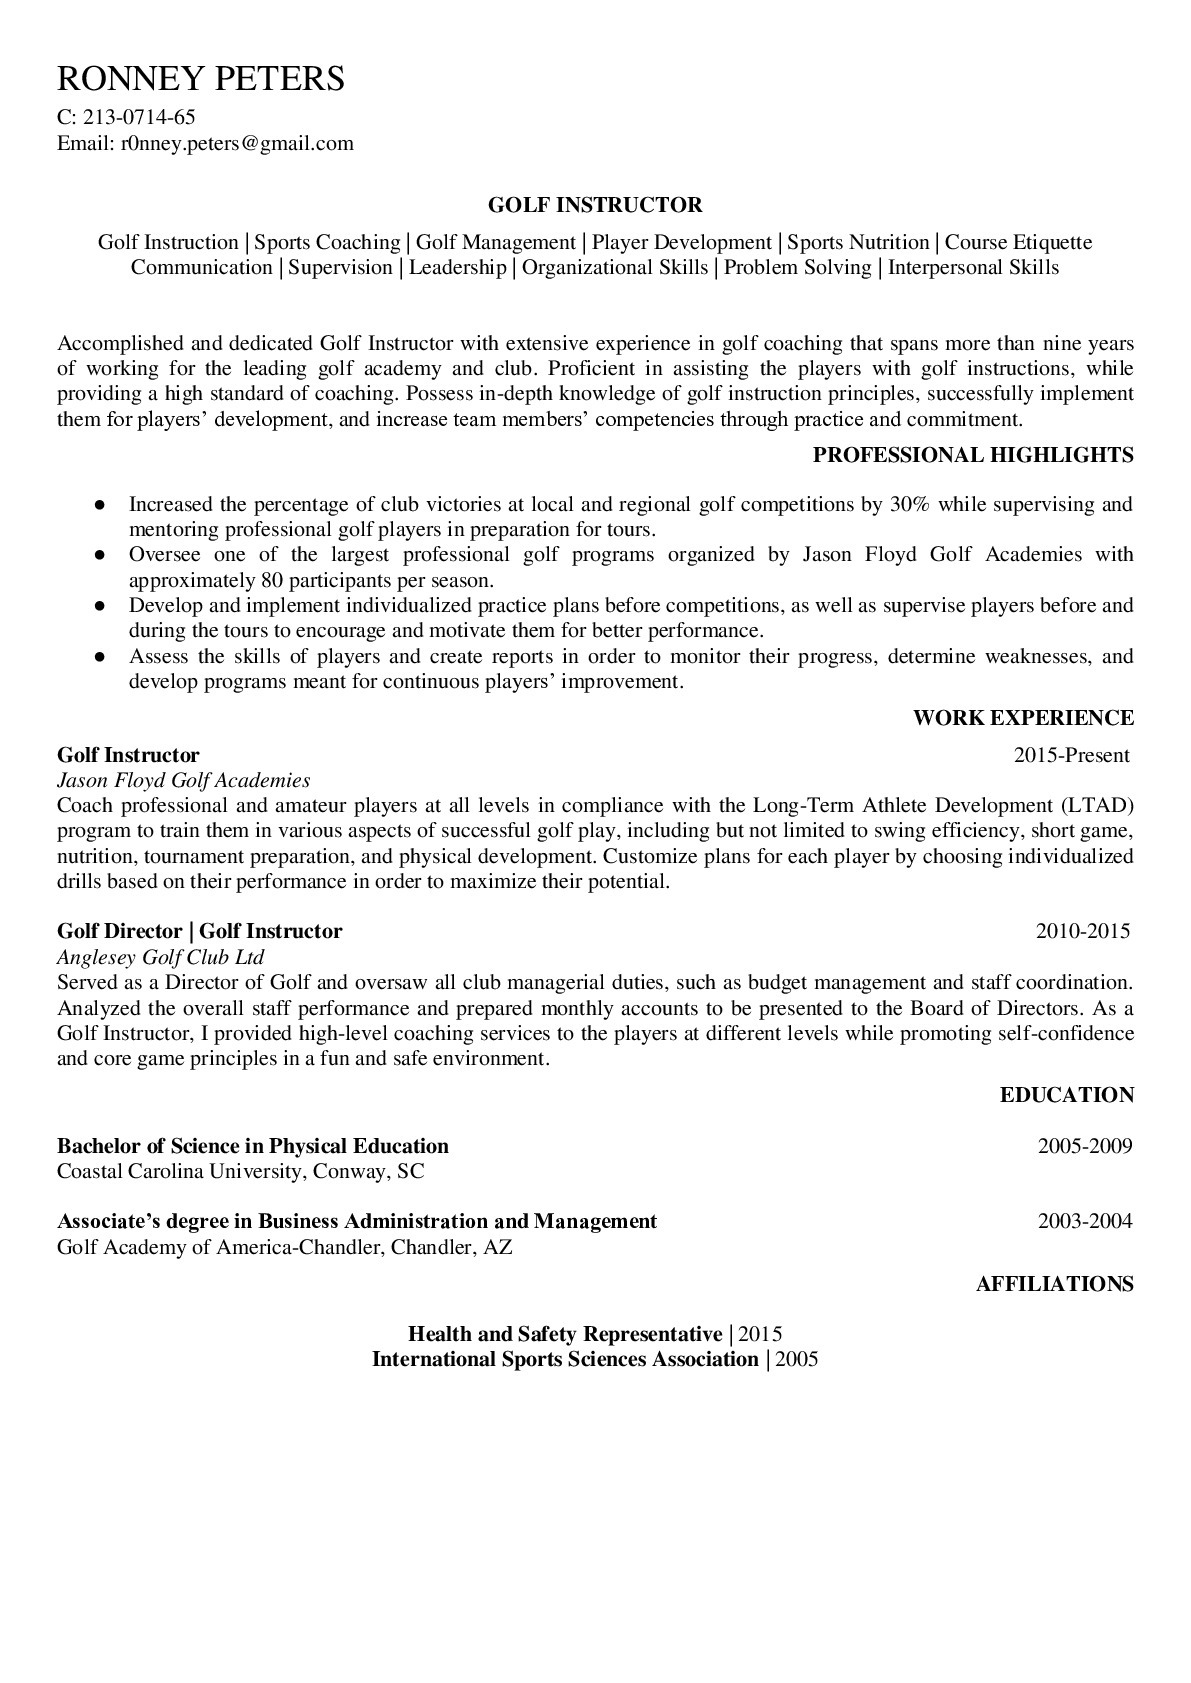 Resume Example for Golf Instructor